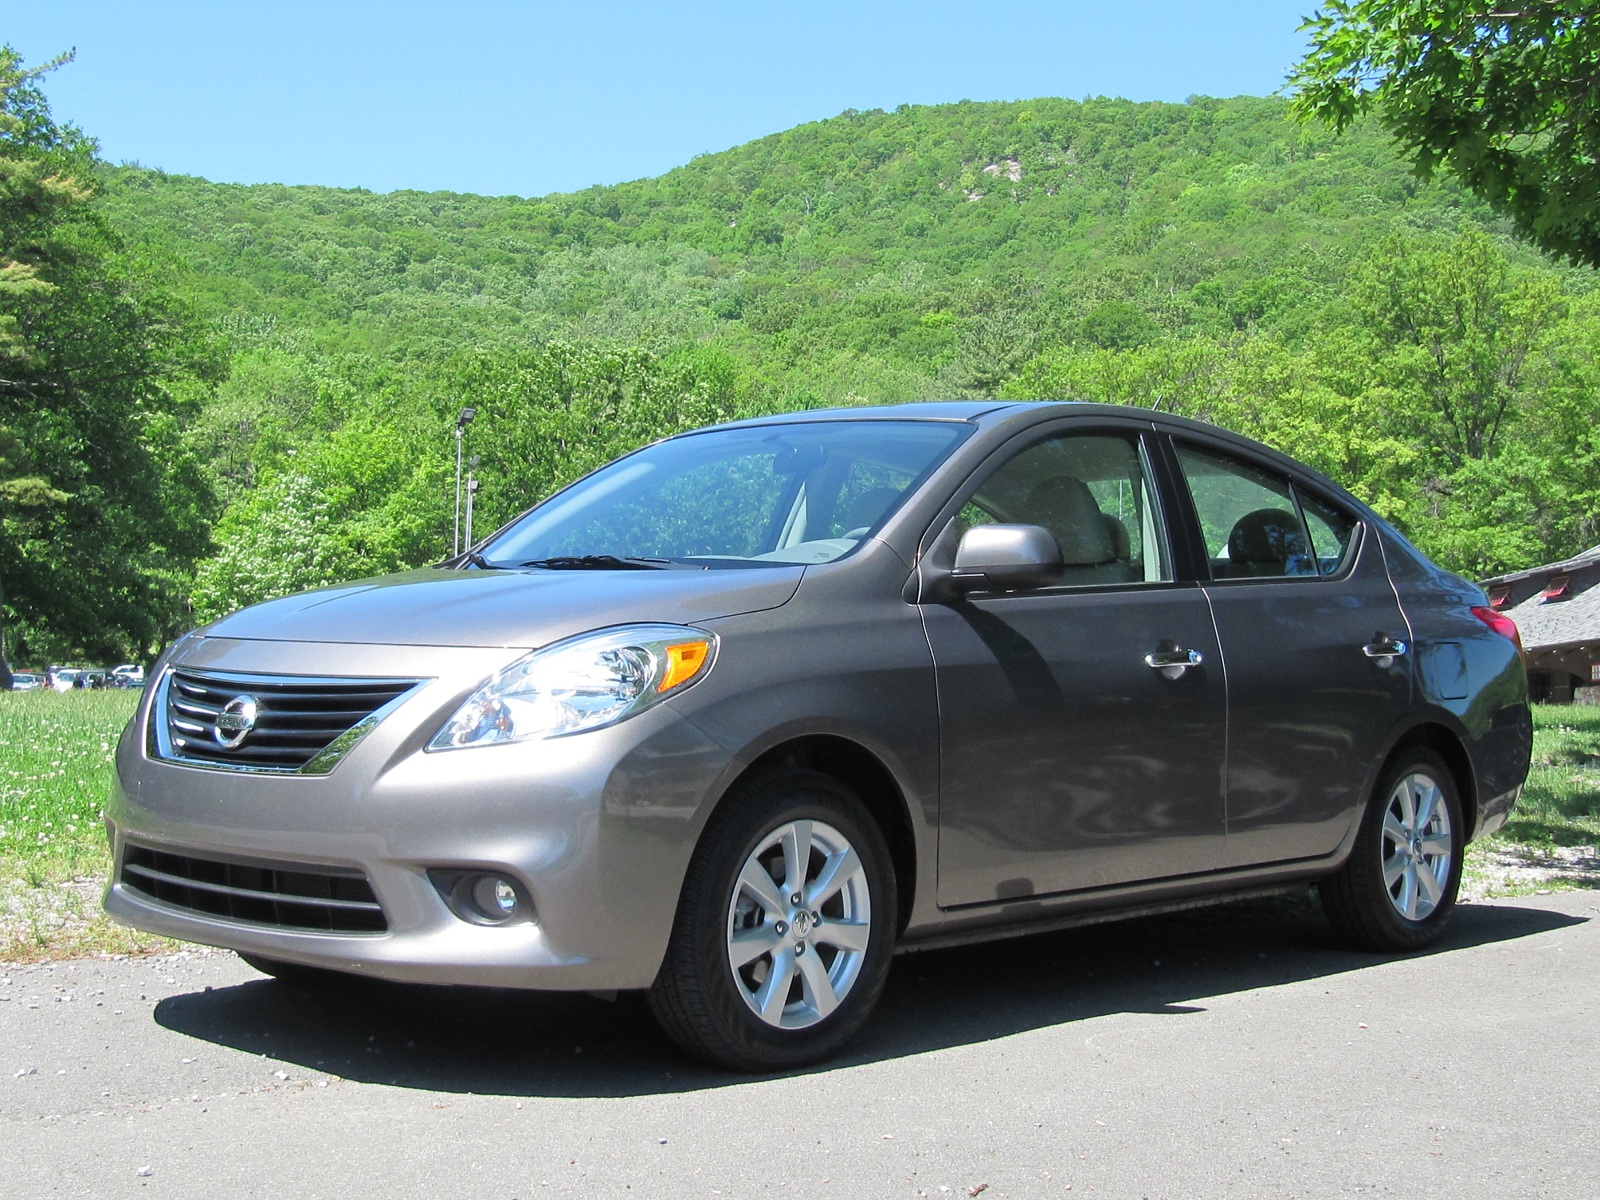 2012 nissan versa first drive review car and driver autos post. Black Bedroom Furniture Sets. Home Design Ideas